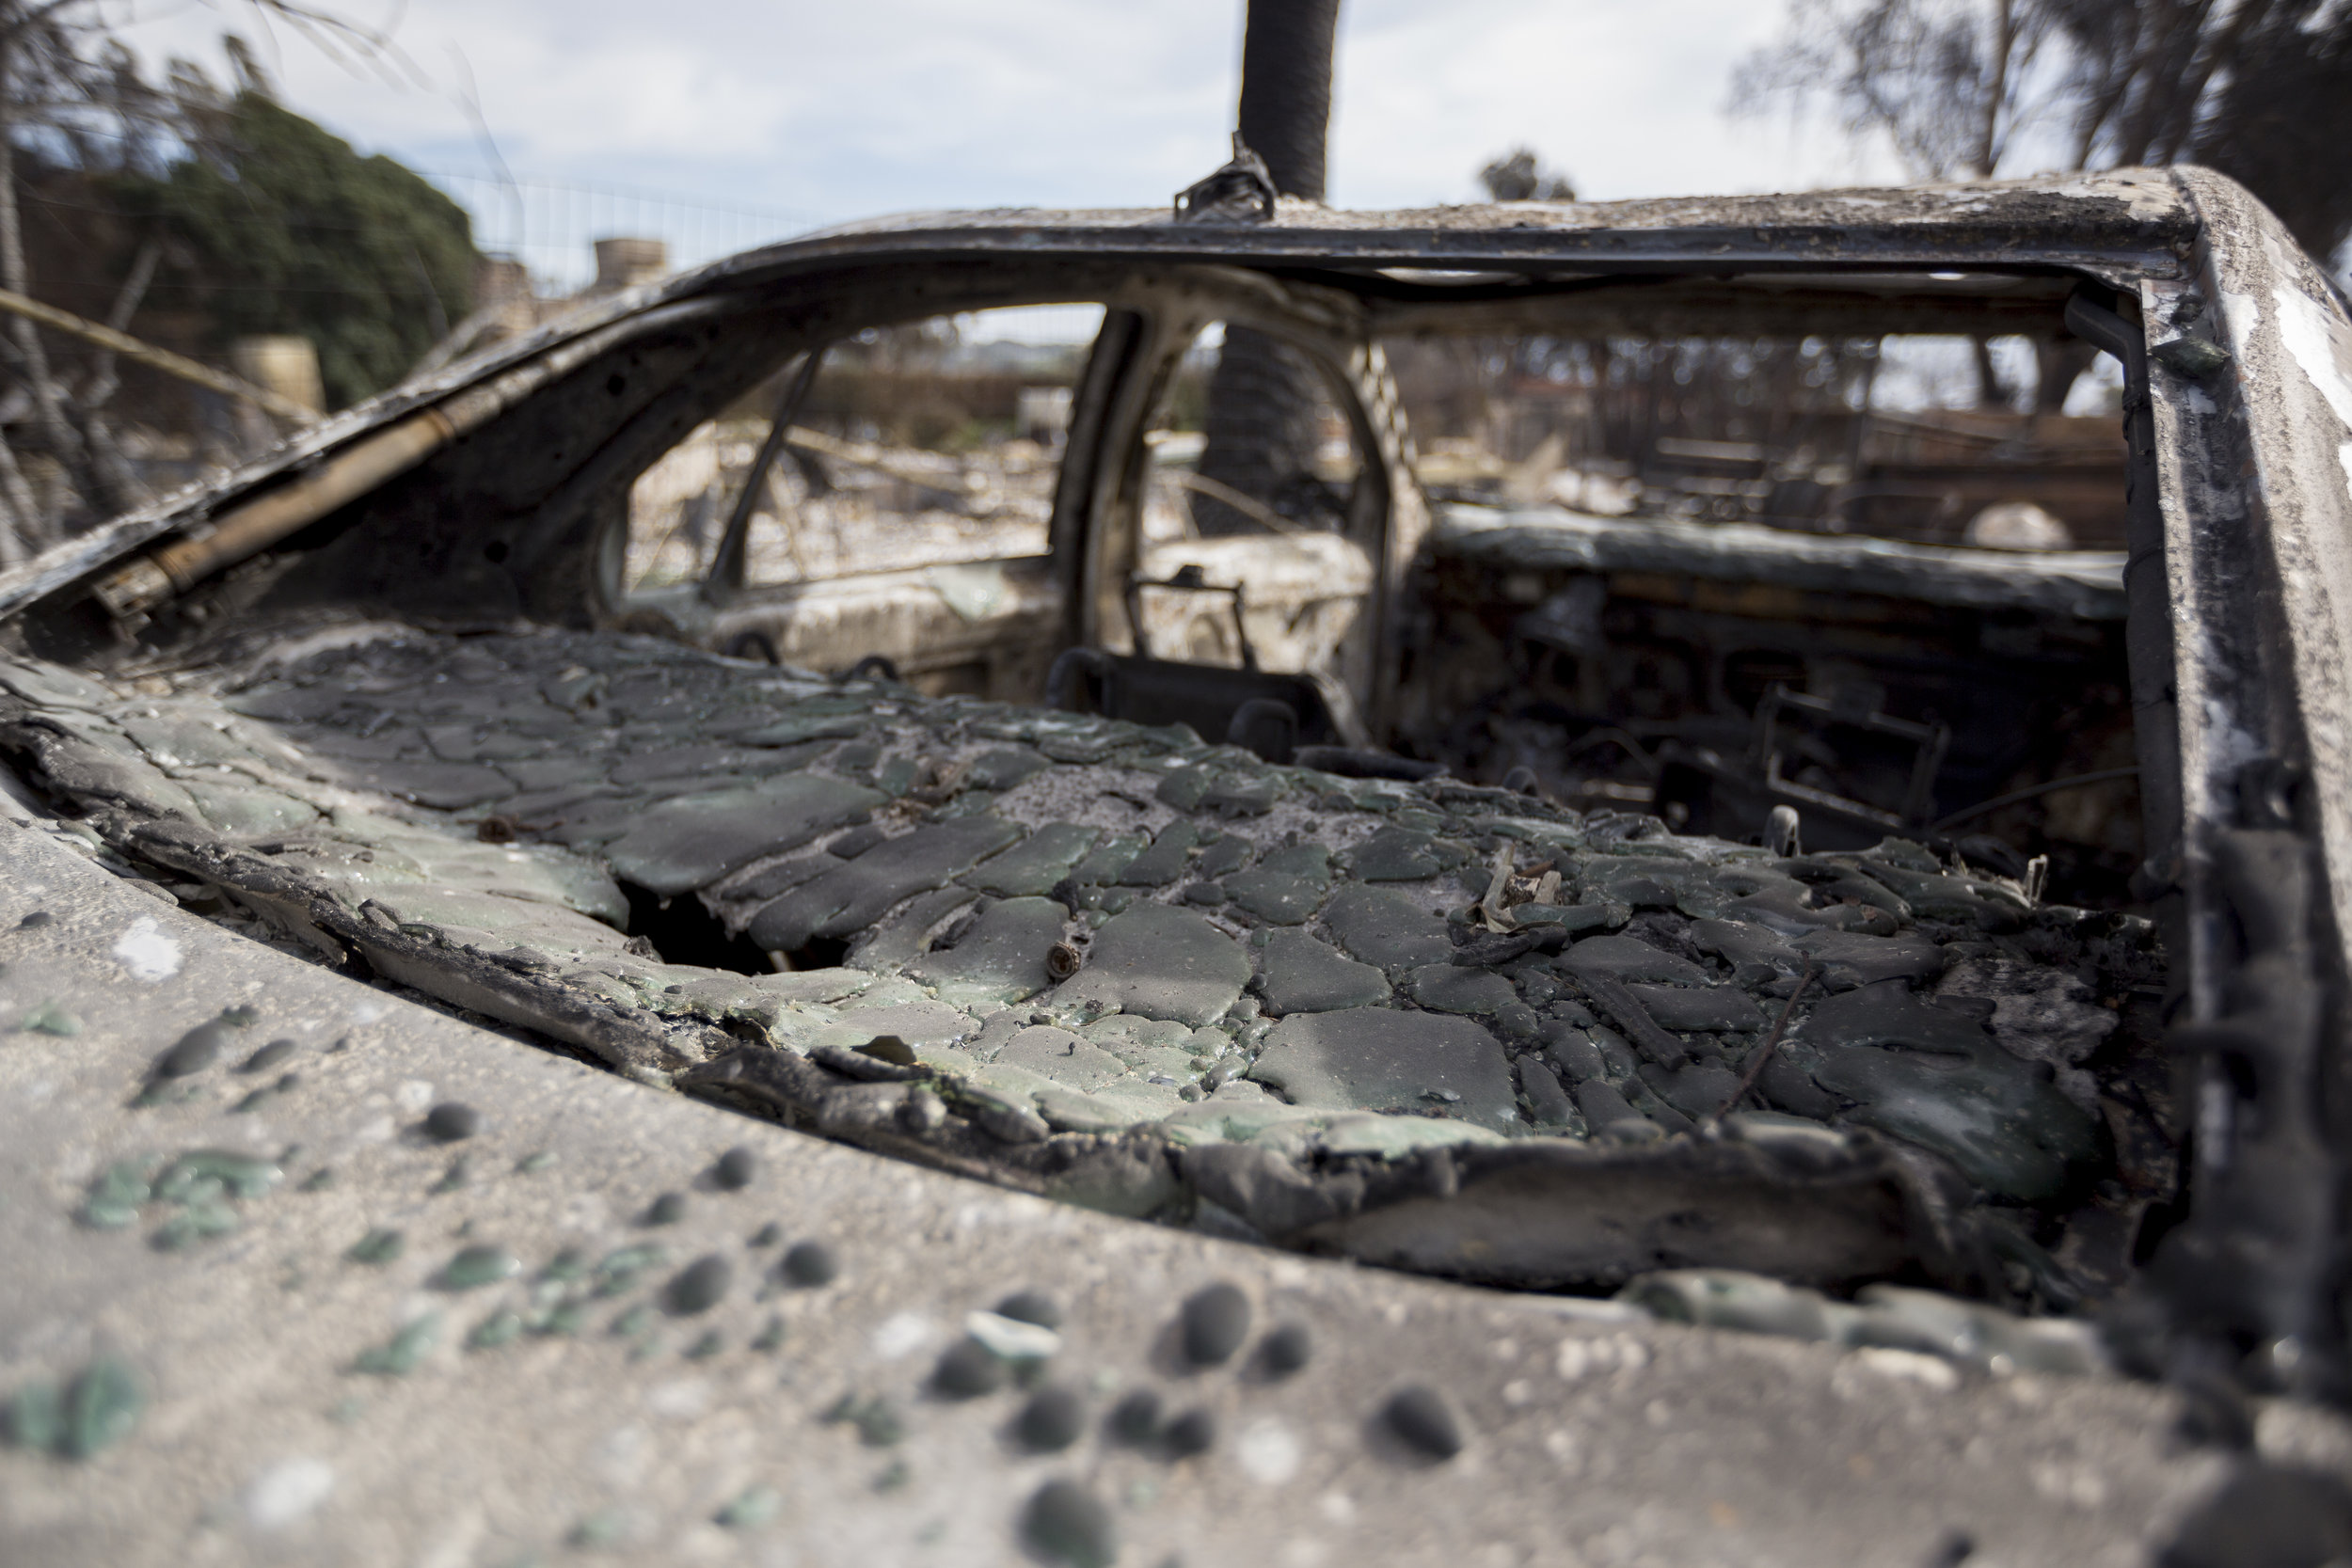 A car destroyed by the Woolsey fire sits along Filaree Heights Ave with its rear glass window melted on November 14, 2018 in Malibu, Calif. (Jose Lopez)